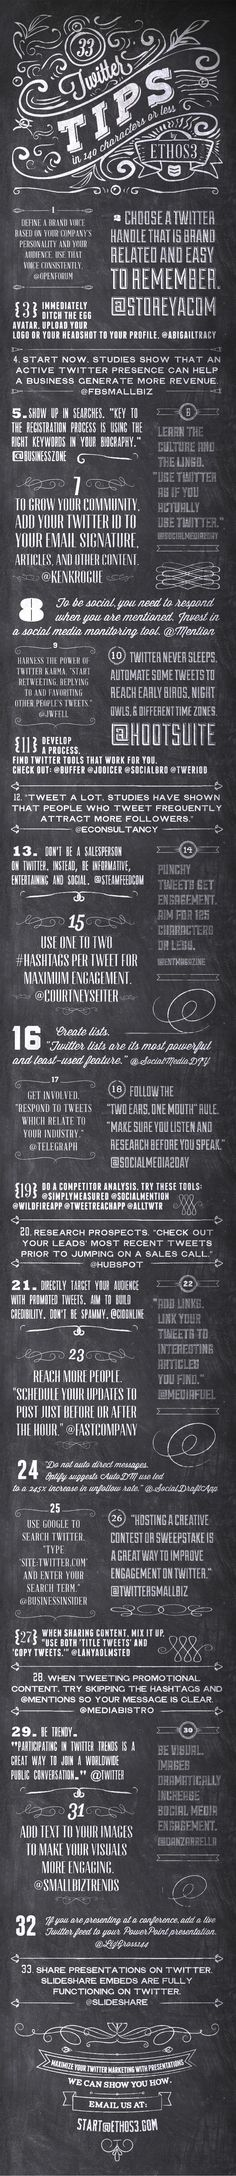 33 #Twitter Tips in 140 Characters (Or Less) [INFOGRAPHIC]